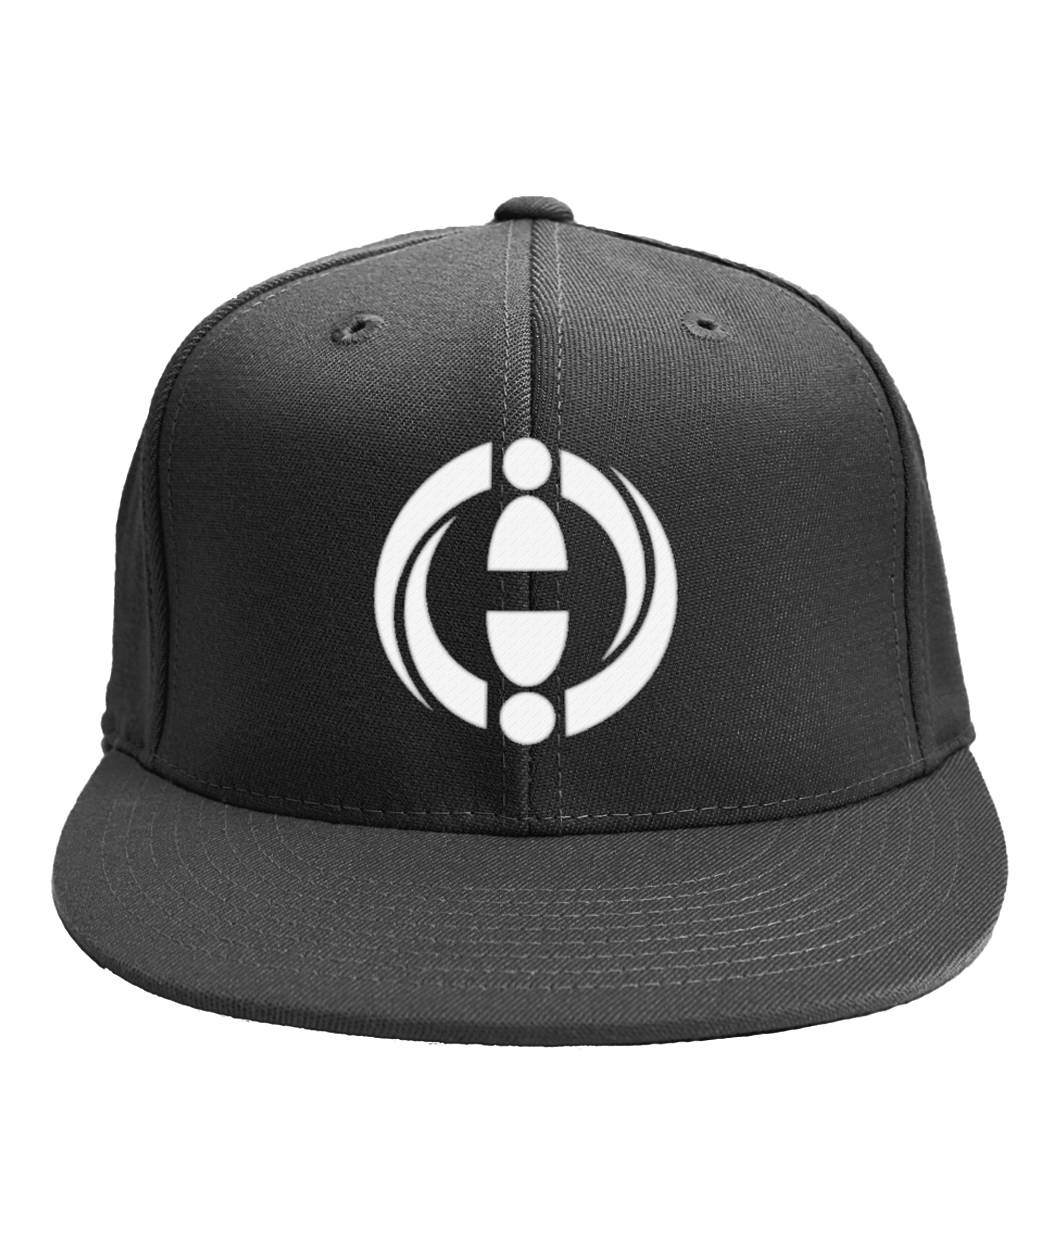 6-Panel Classic Snapback Embroidered CHI Logo Hat